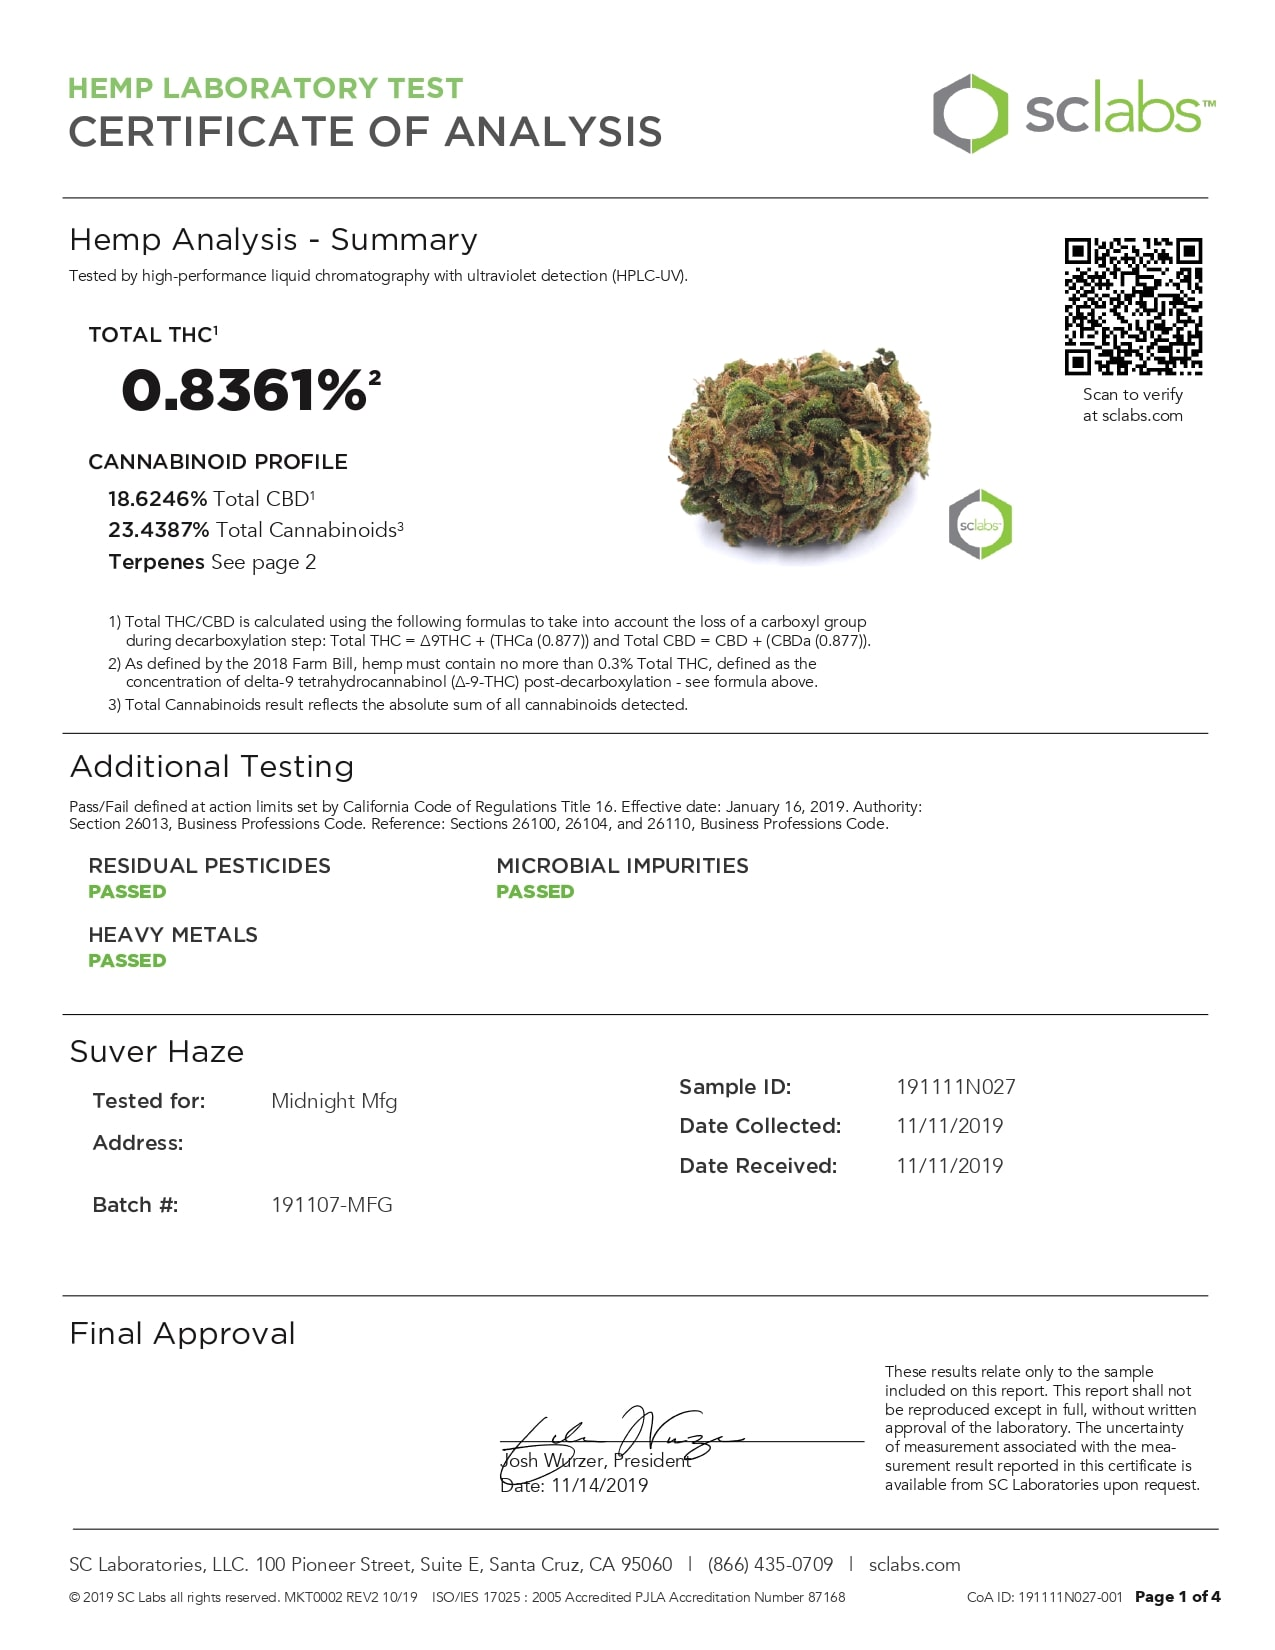 CANNA RIVER CBD Suver Haze Lab Report Hemp Flower